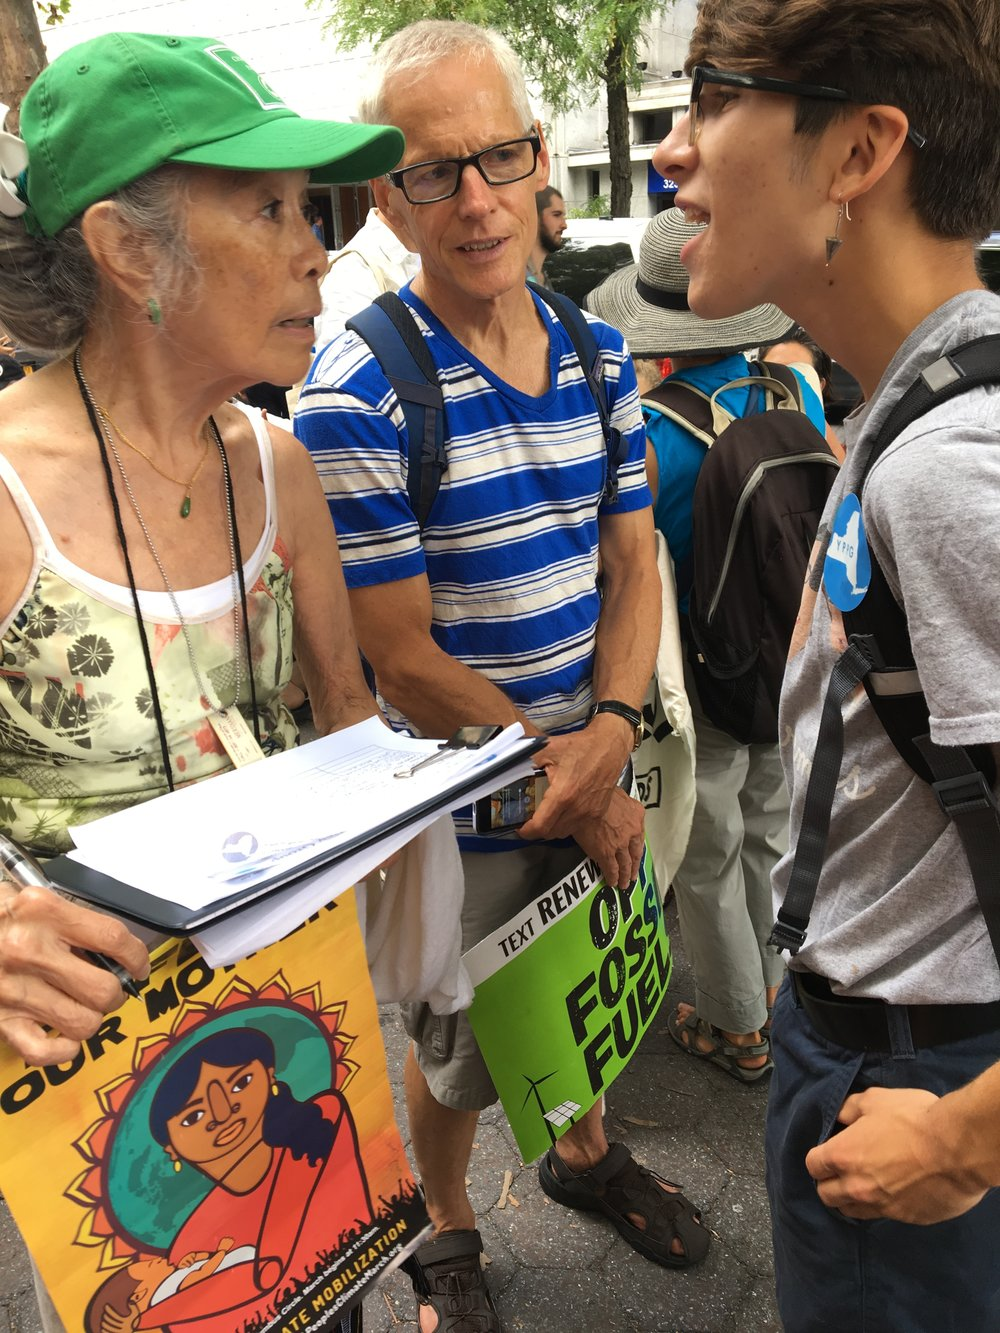 A YPPG member petitions for the Young Voter act at the Zero Hour NYC Youth Climate March